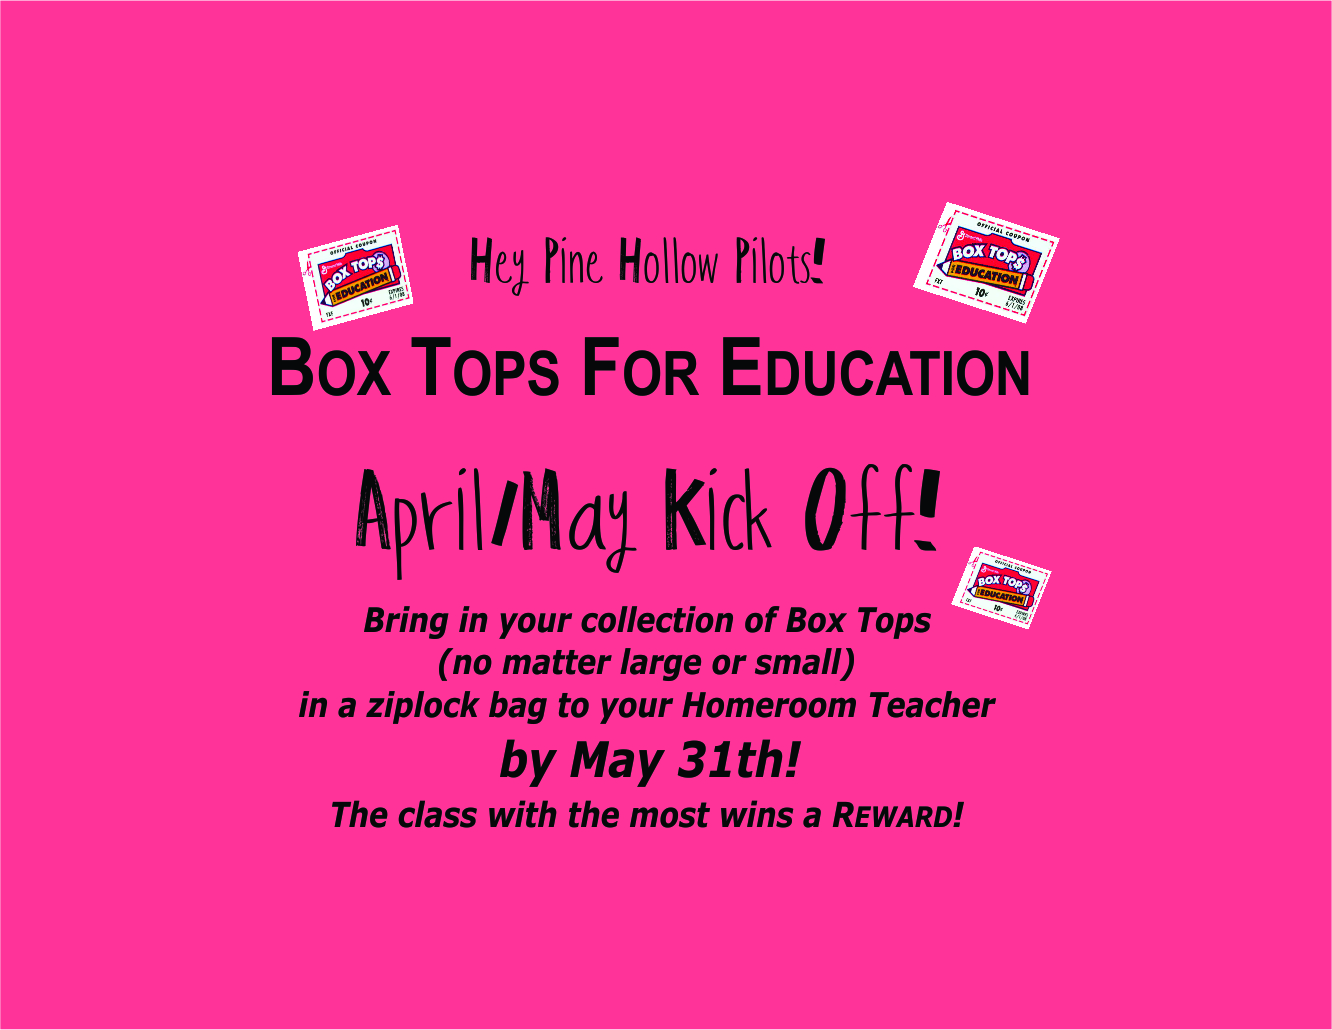 Keep sending in those Box Tops!